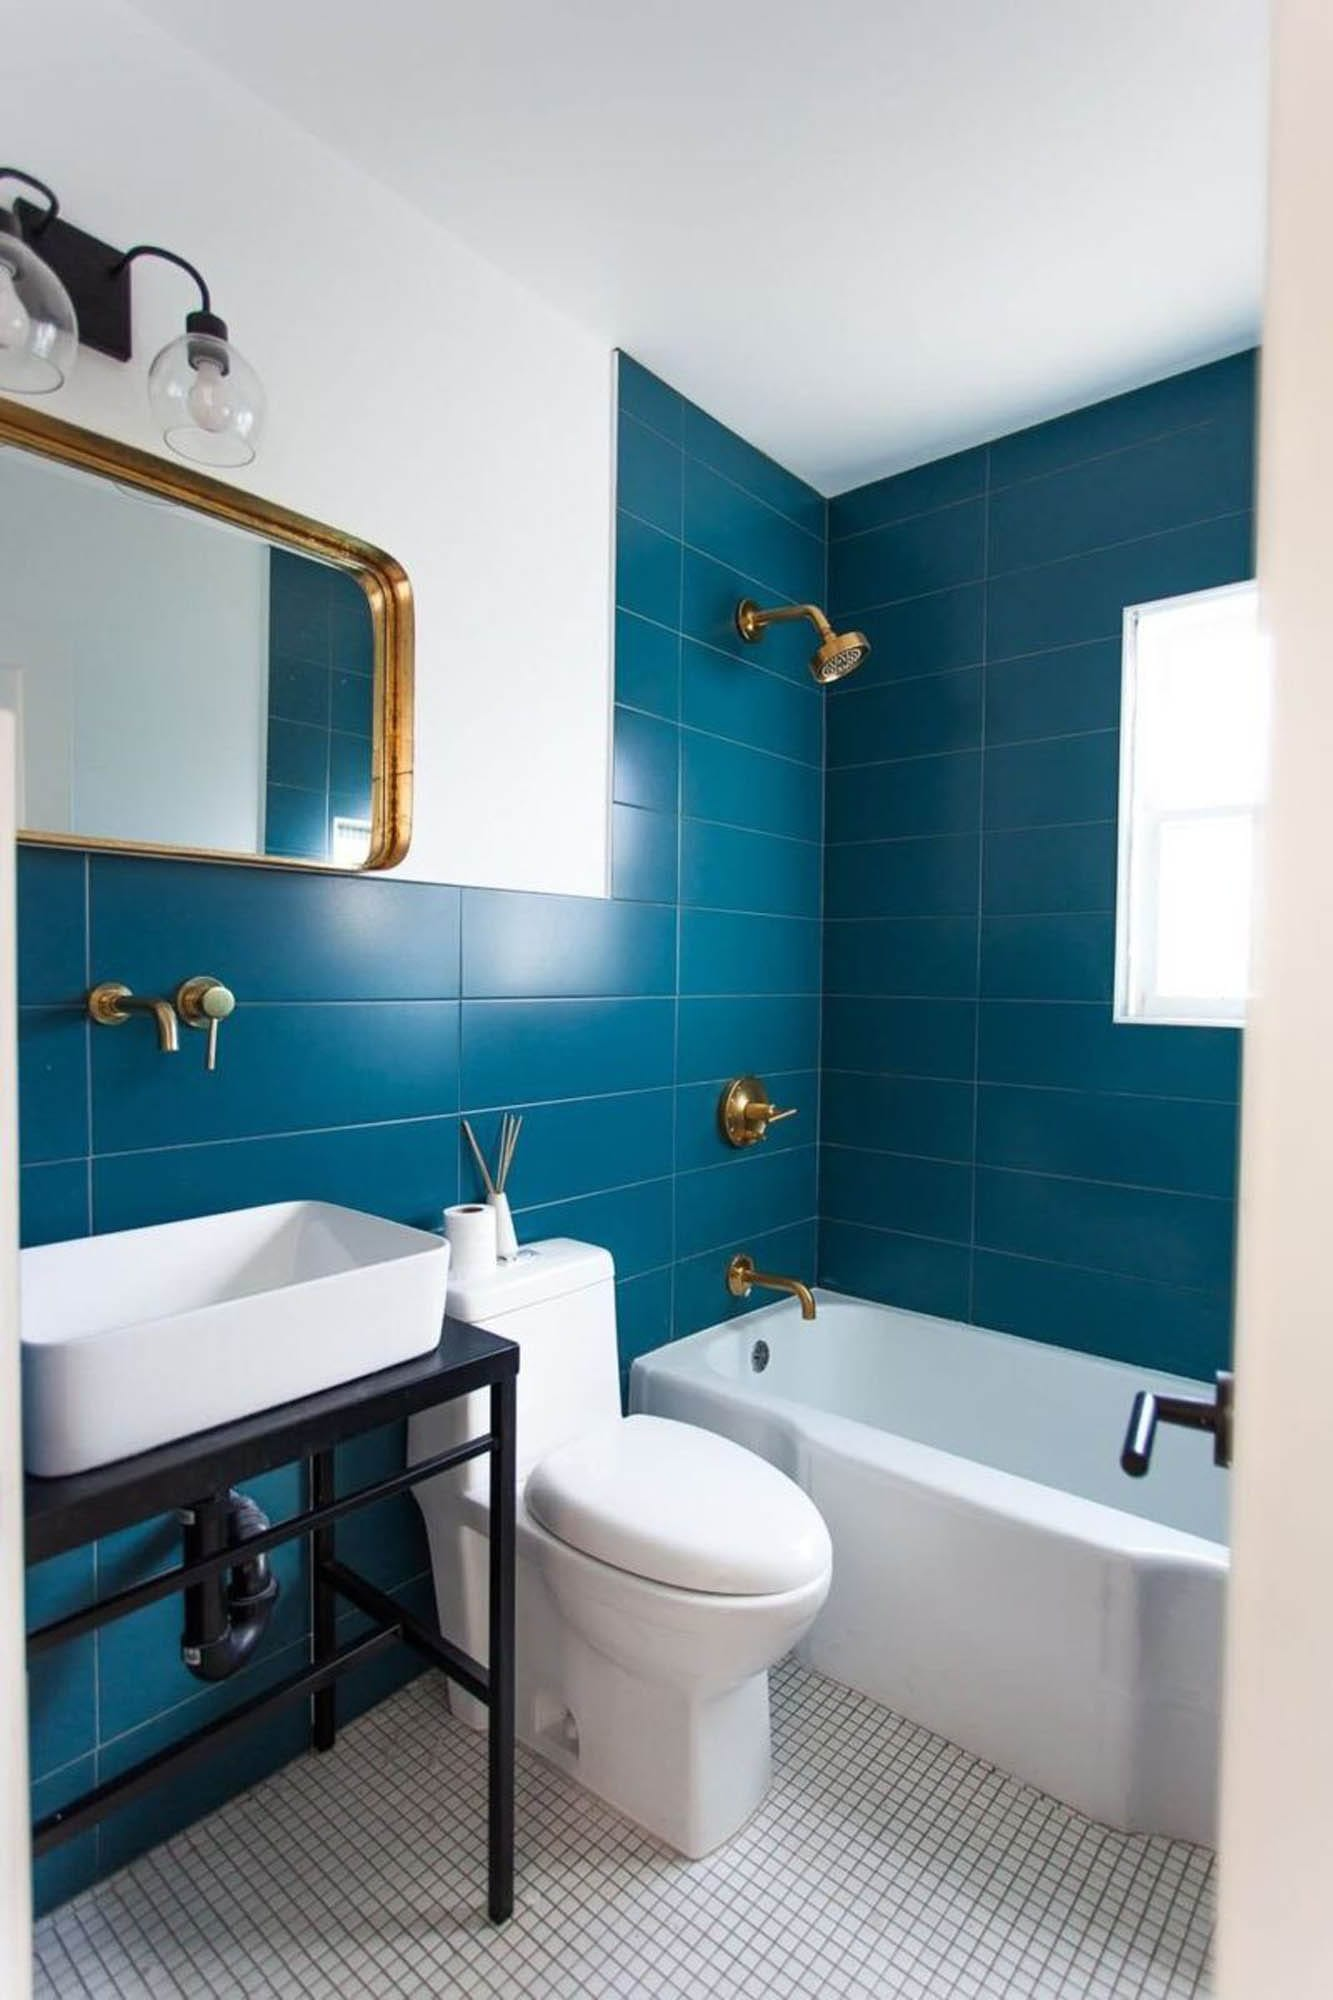 Bold blue wall tiles